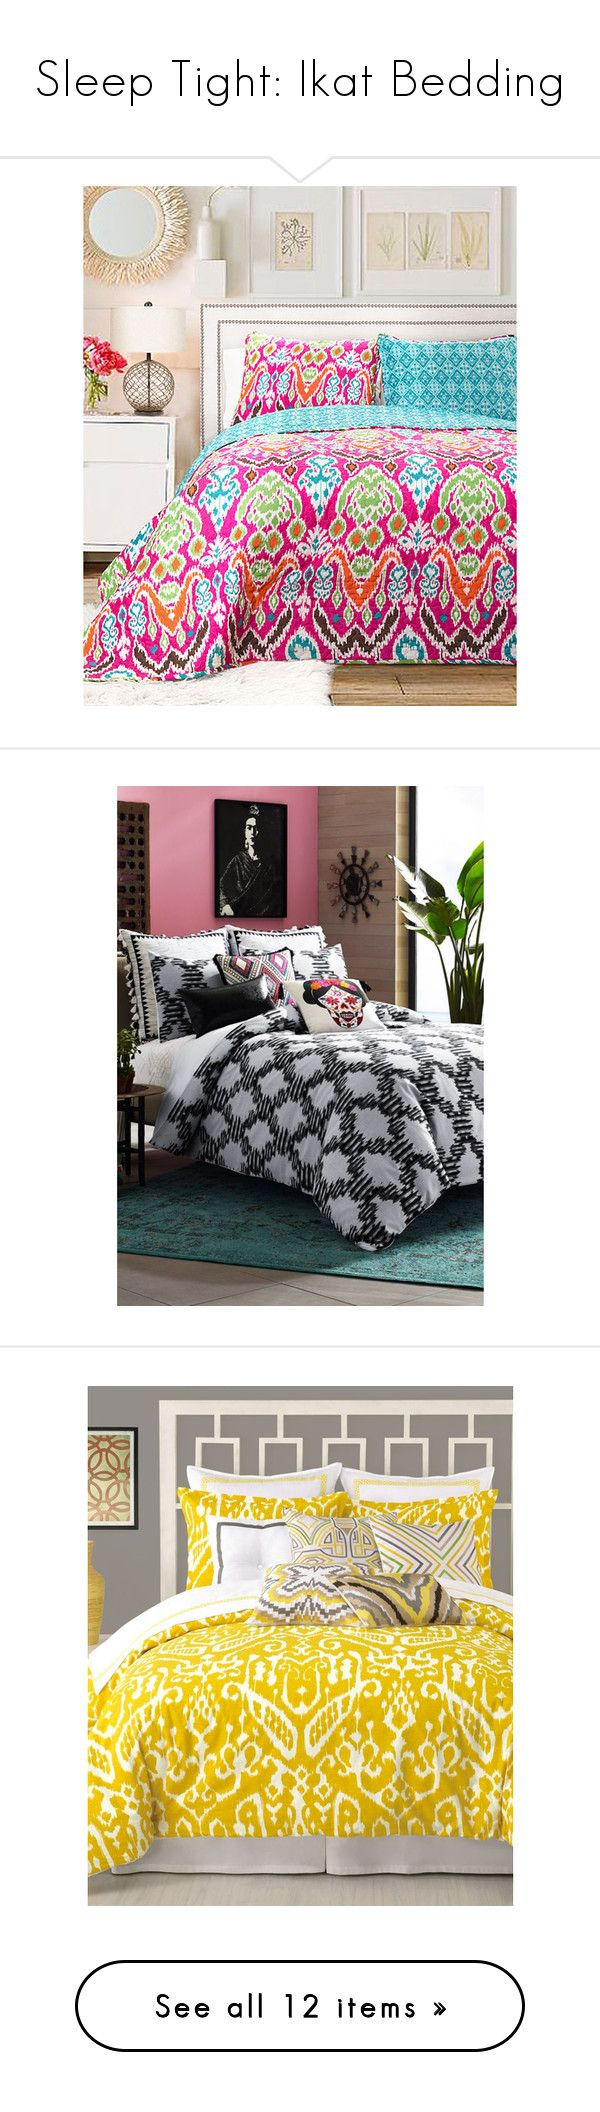 """""""Sleep Tight: Ikat Bedding"""" by polyvore-editorial ❤ liked on Polyvore featuring ikatbedding, home, bed & bath, bedding, quilts, fuchsia bedding, fuschia bedding, 3 piece quilt set, ikat bedding and lush decor bedding"""